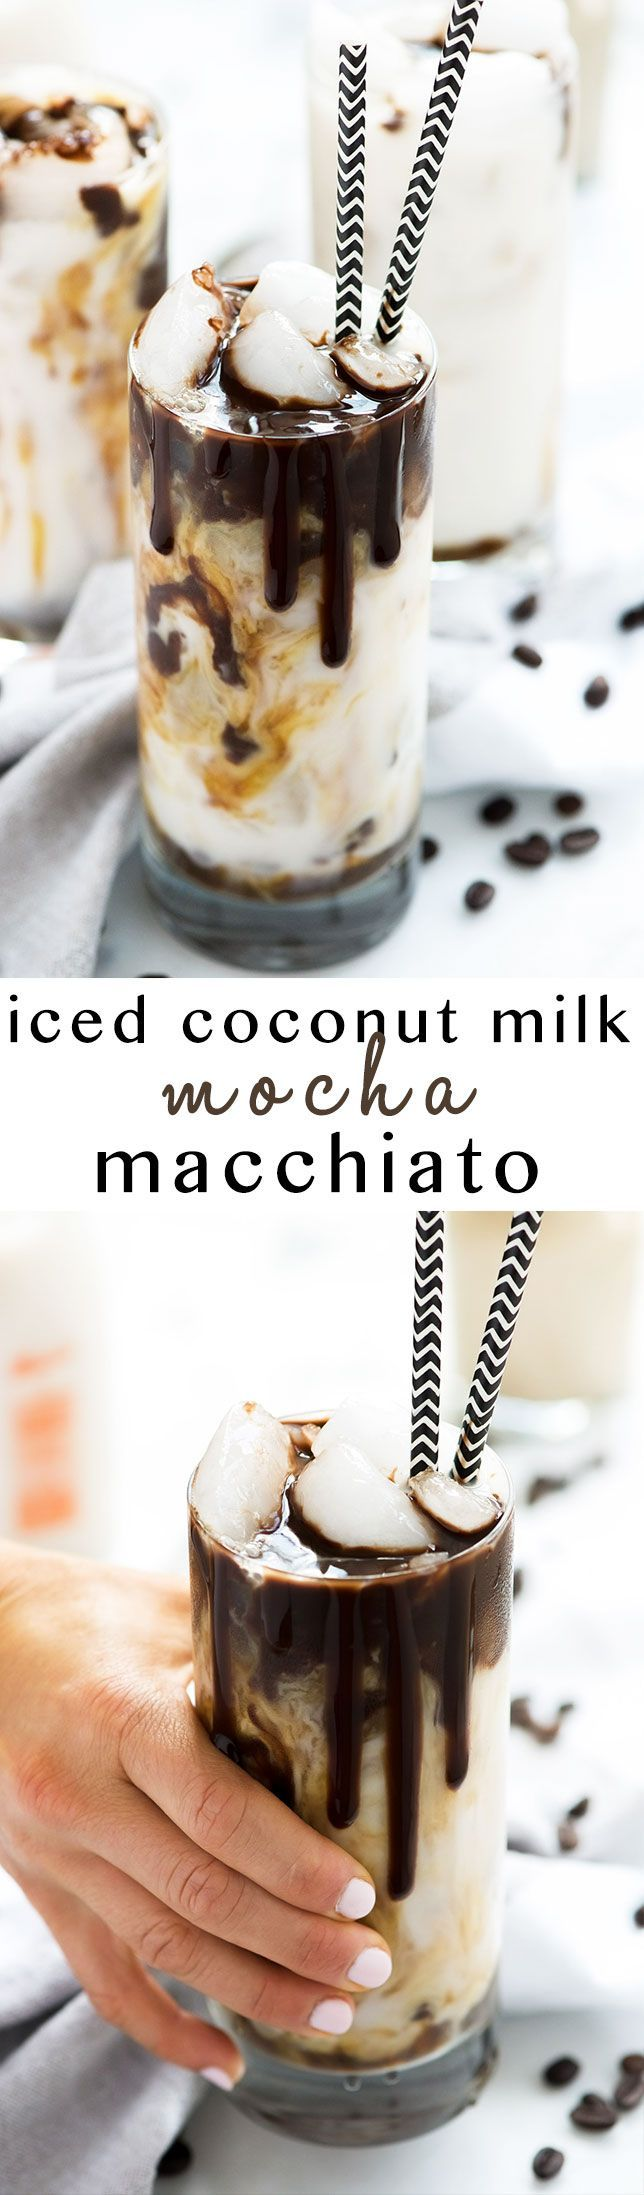 Best 25+ Starbucks iced coffee ideas only on Pinterest | Expresso ...